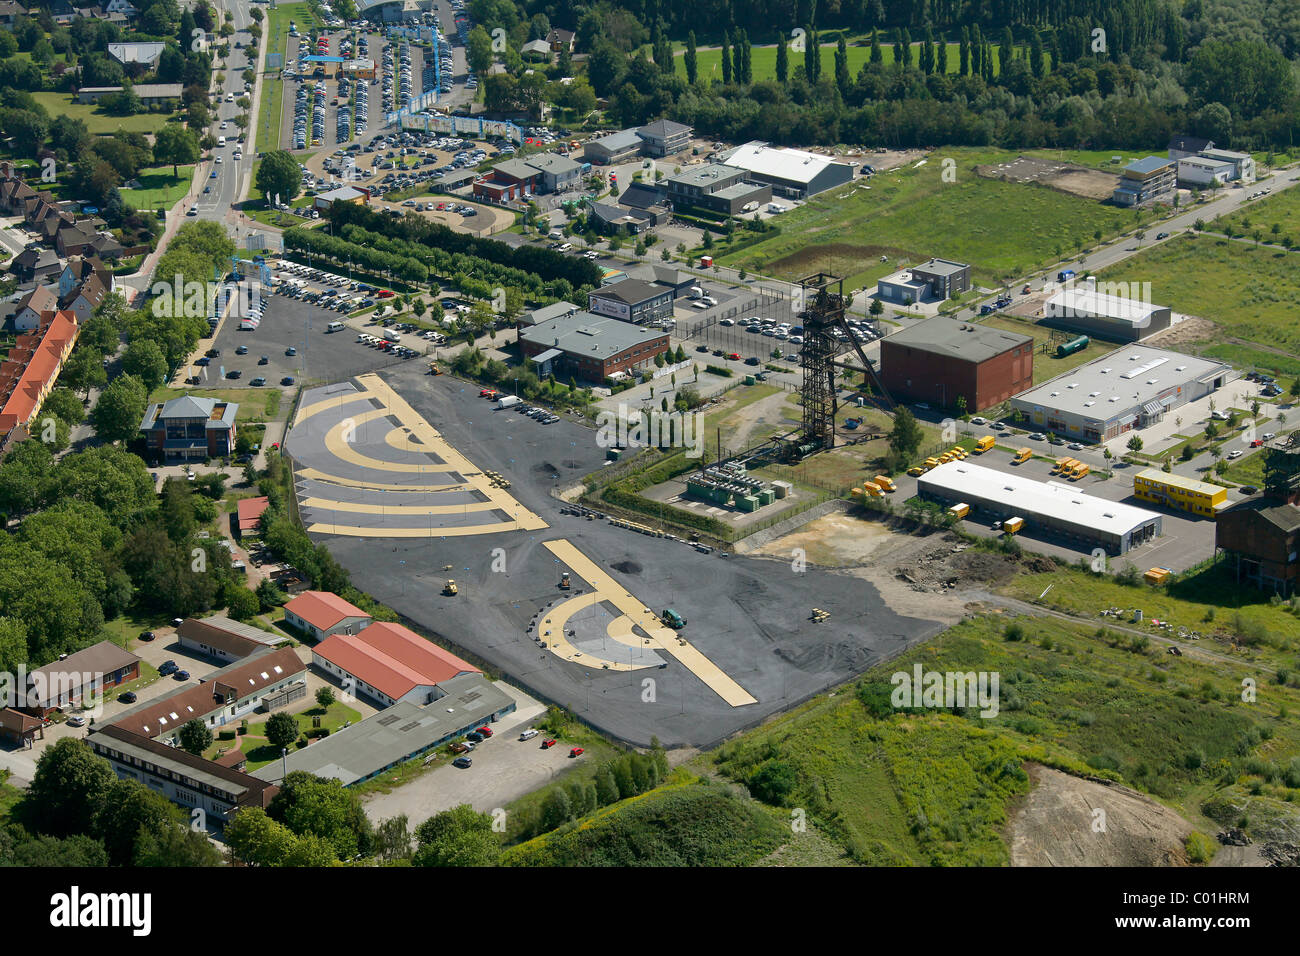 Aerial view, VW Potthoff car dealer, Radbod coal mine, former colliery site, Hamm-Bockum-Hoevel district, Hamm, - Stock Image